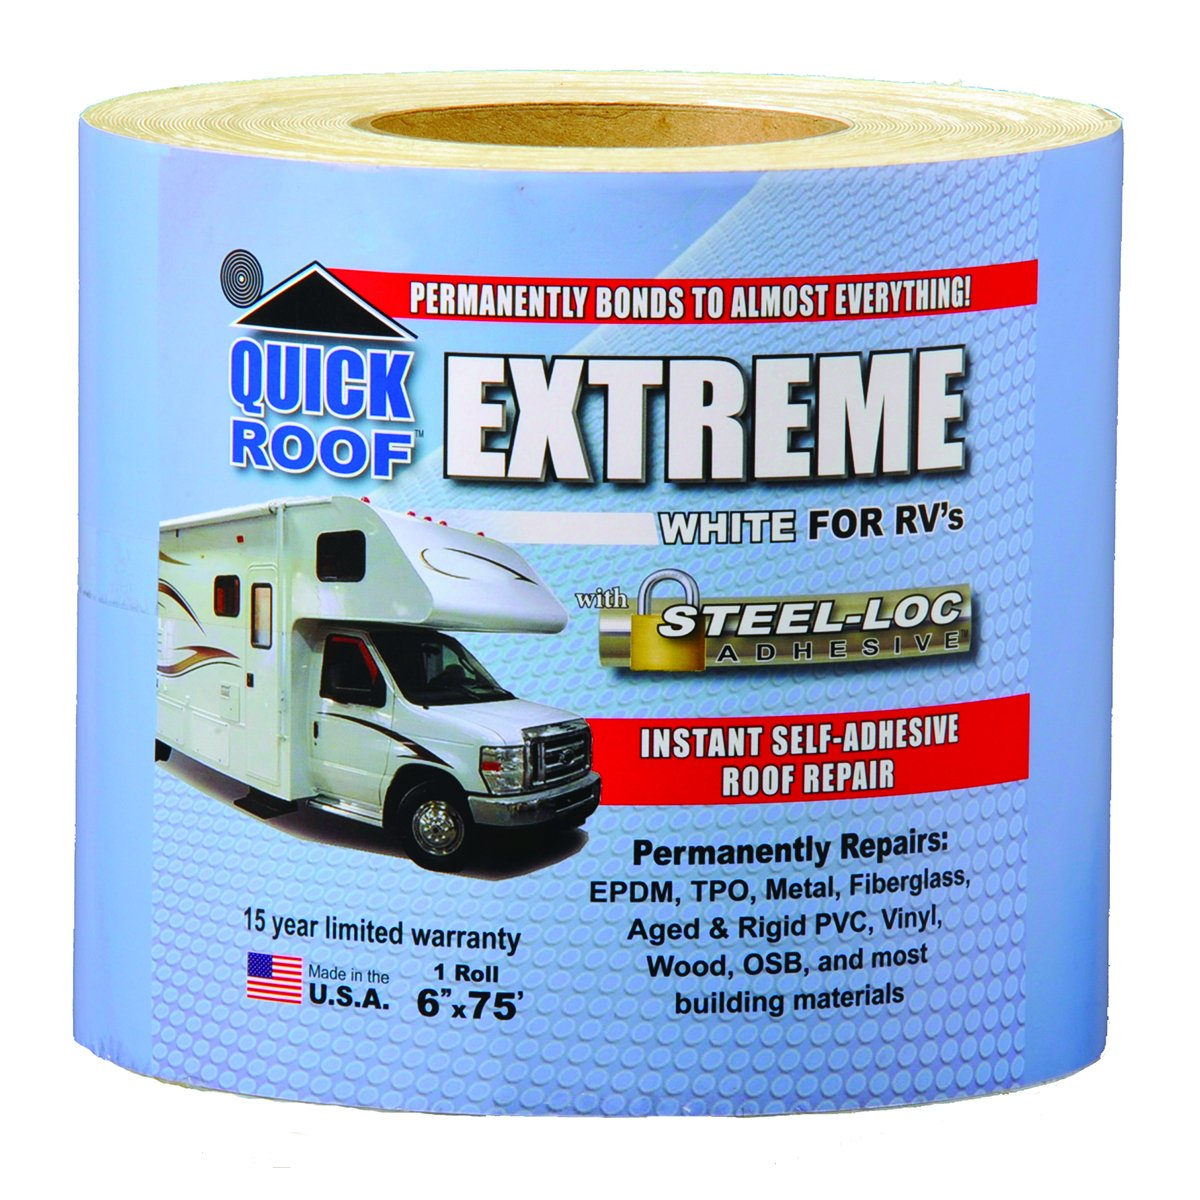 White for RVs Cofair UBE625 Quick Roof Extreme with Steel-Loc Adhesive 6 x 25